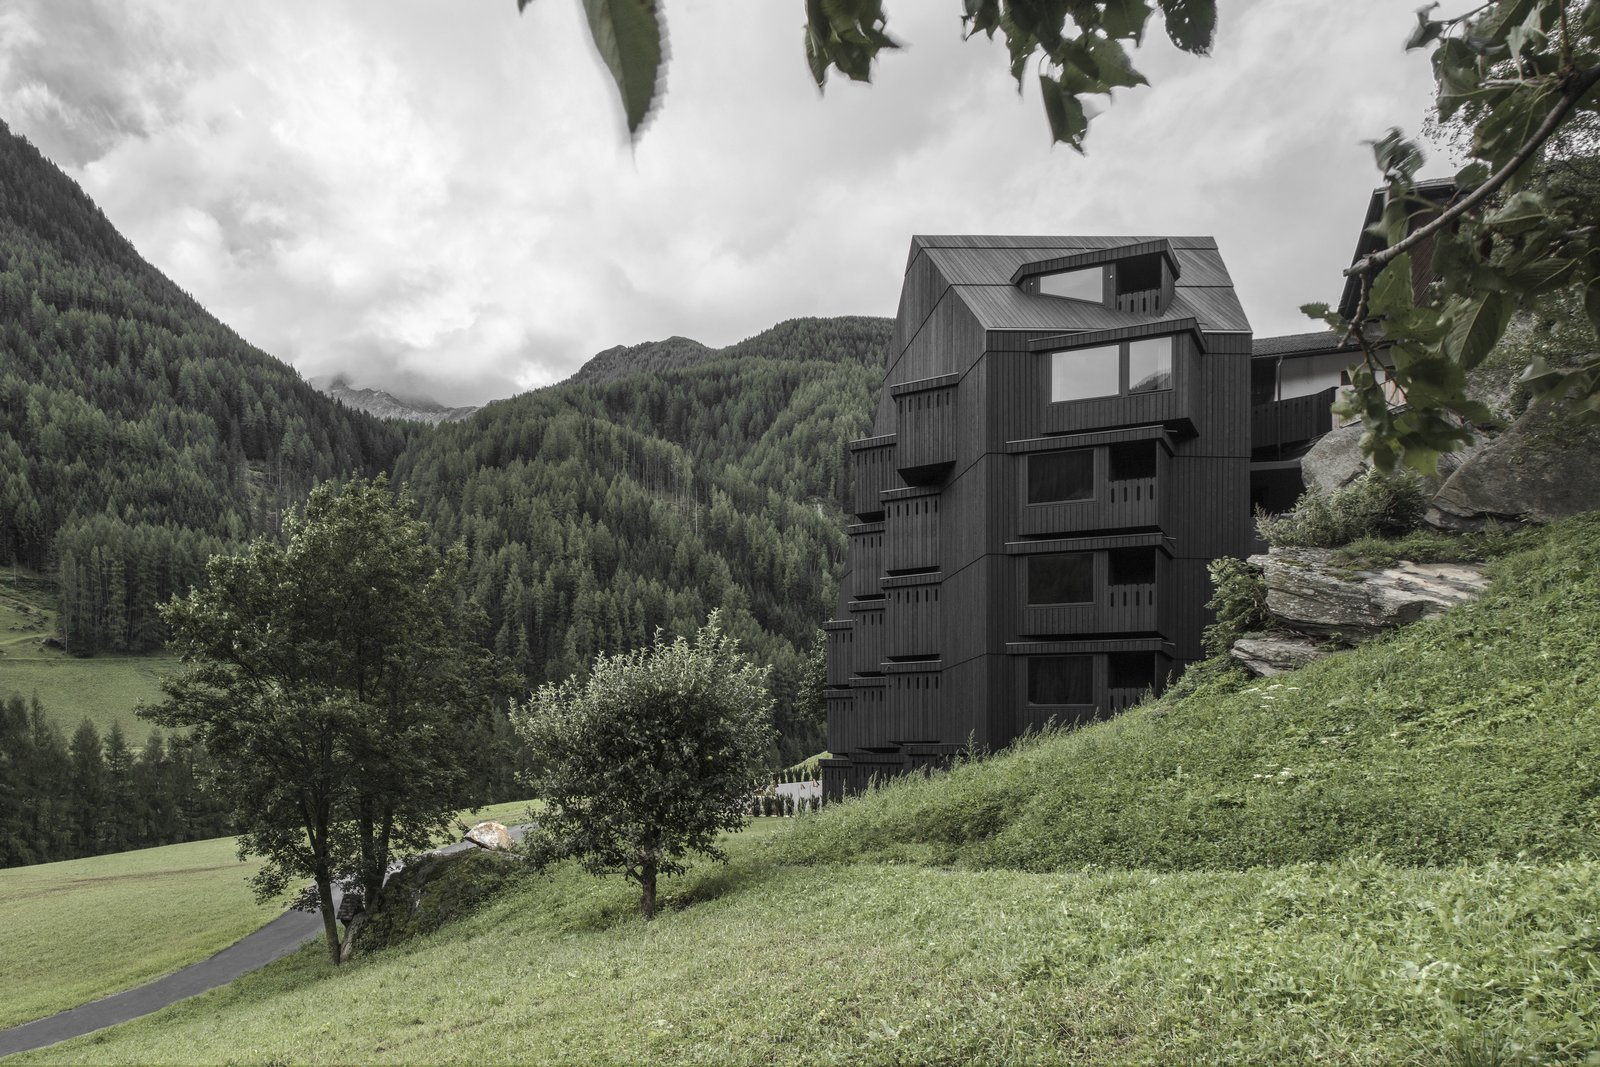 Exterior, Wood Siding Material, and Glass Siding Material  Photo 1 of 9 in A Dramatic Hotel in Northern Italy Is a Hiker's Refuge